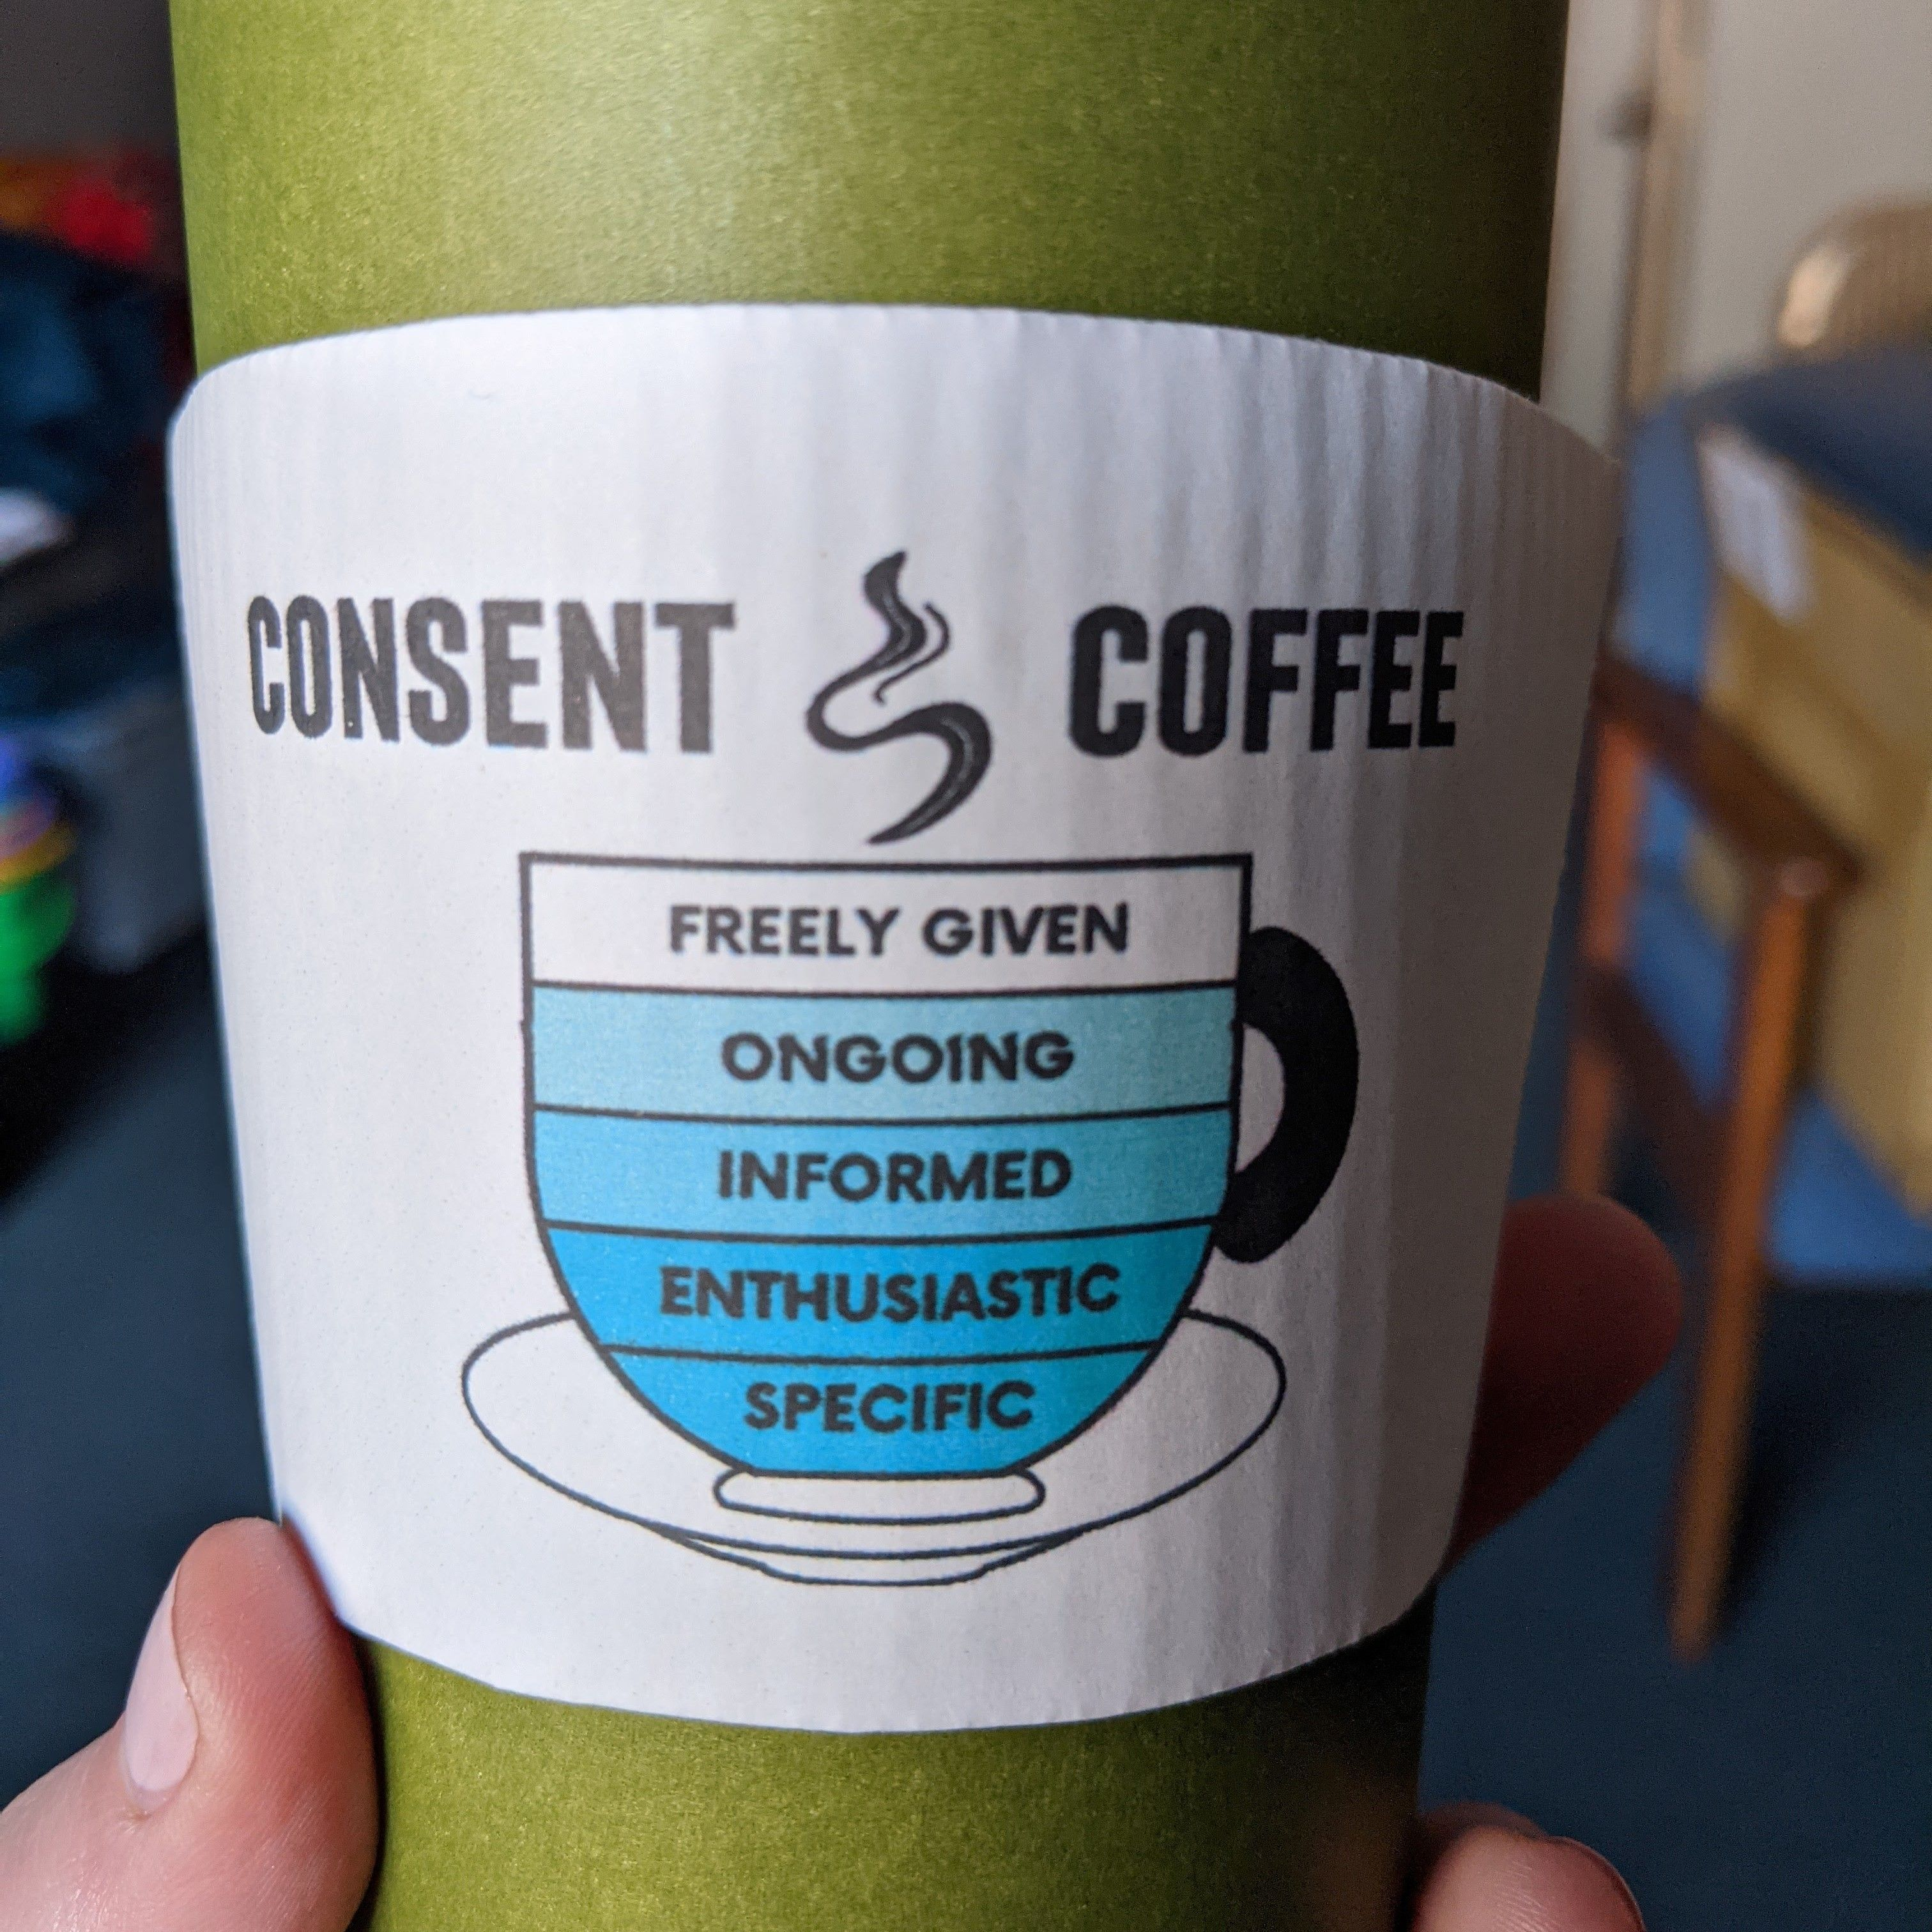 Consent: Let's Talk About It